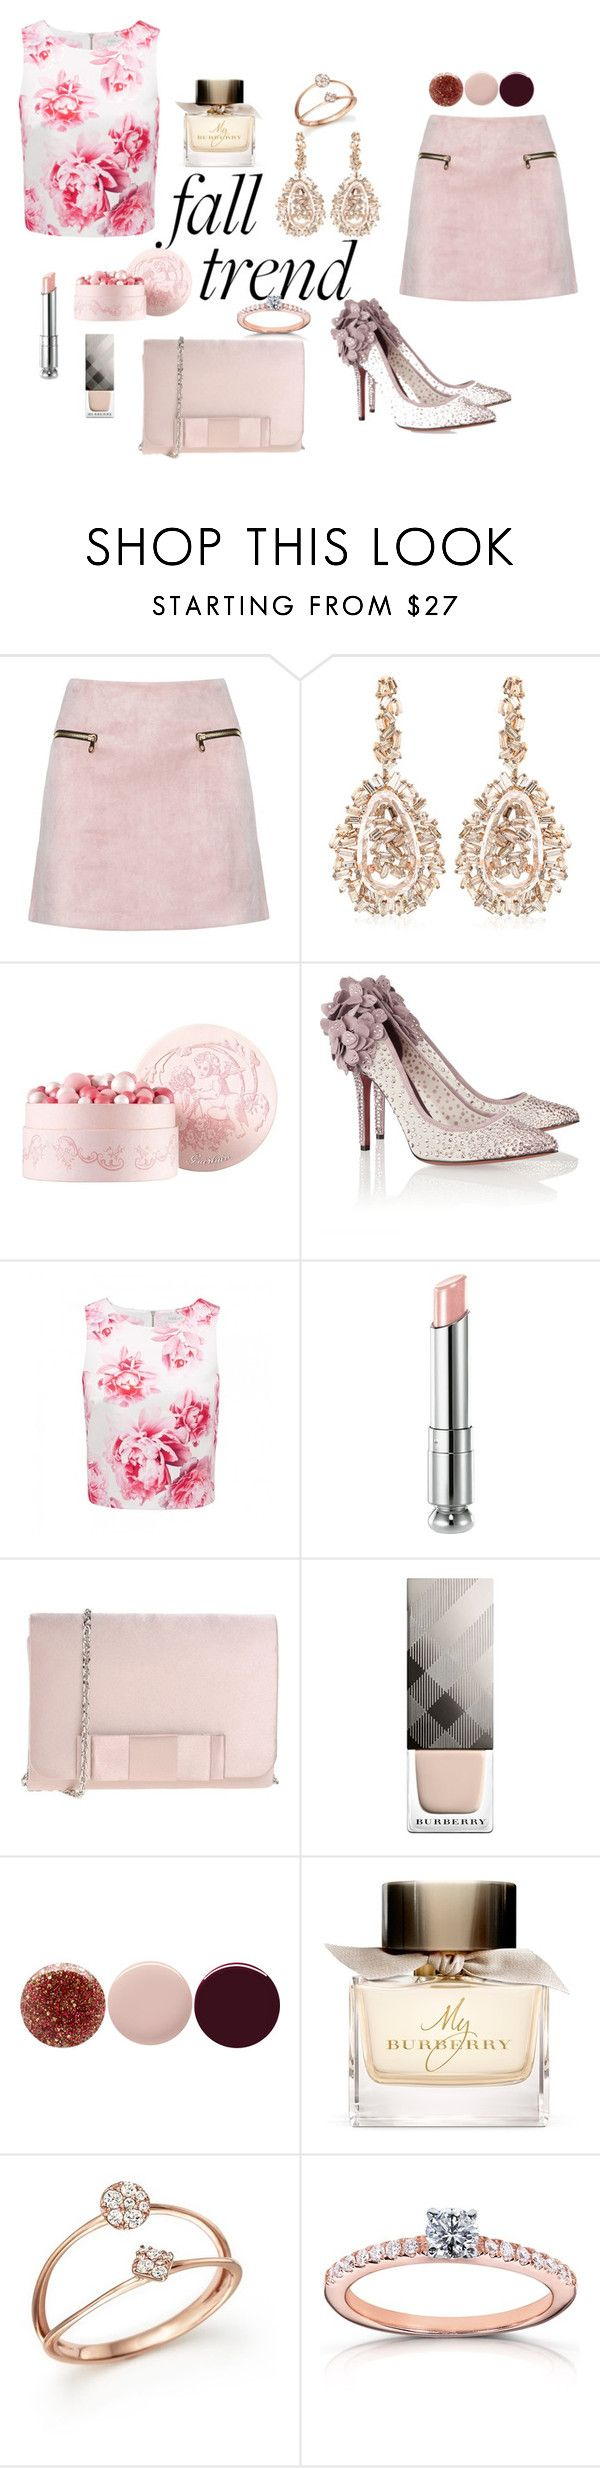 """Untitled #118"" by popescu-io on Polyvore featuring Suzanne Kalan, Guerlain, Bruno Magli, Forever New, Christian Dior, Marina Galanti, Burberry, Nails Inc., Bloomingdale's and Kobelli"